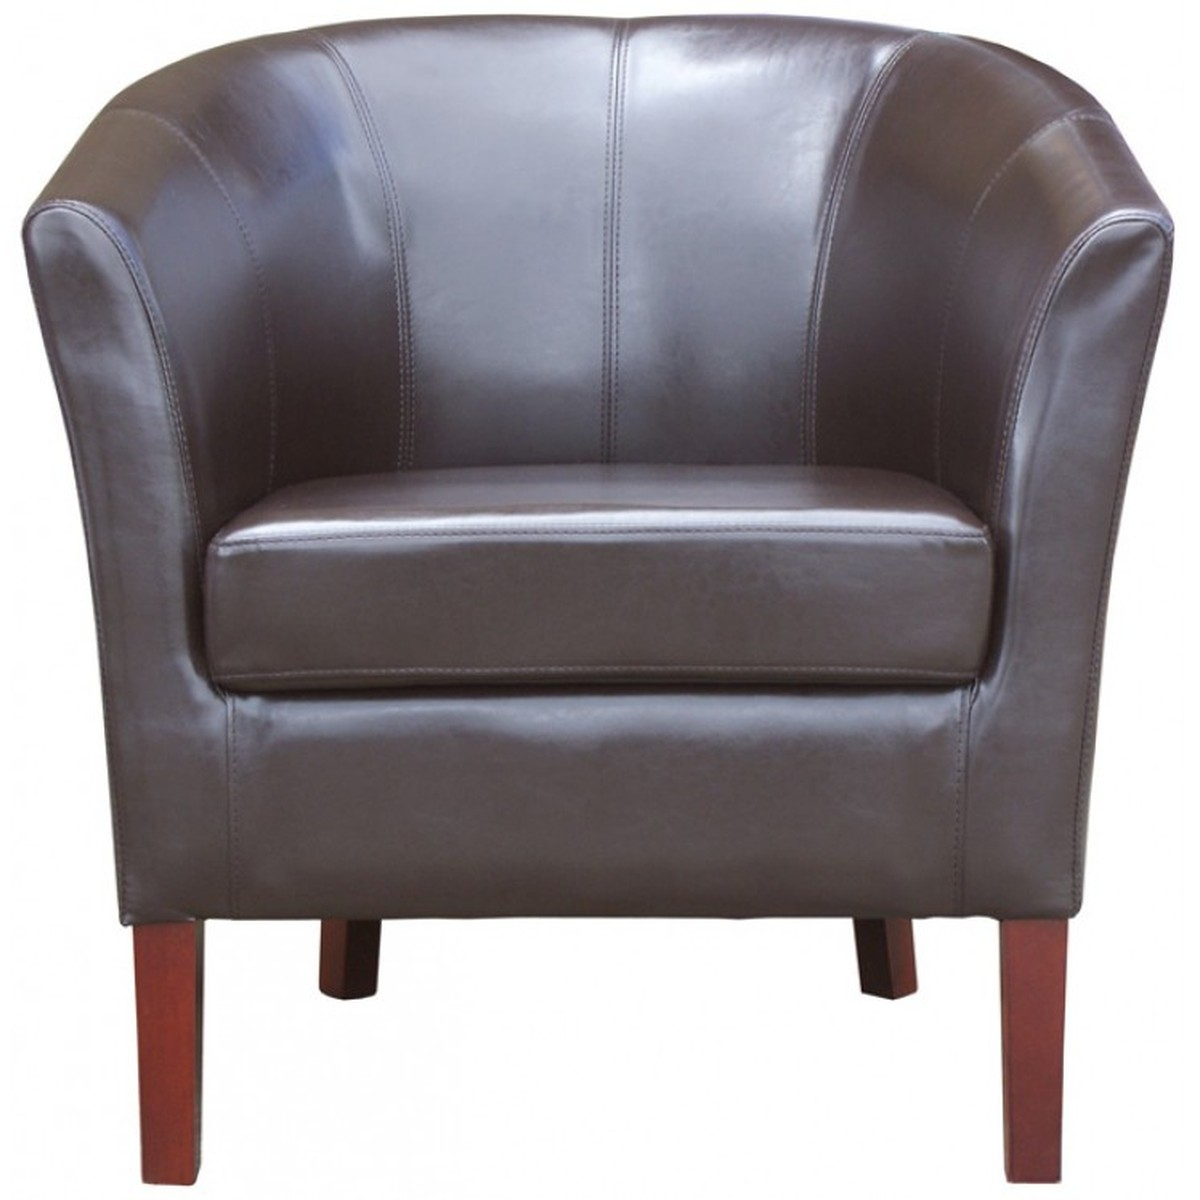 New Brown Faux Leather Mayfair Commercial Tub Chairs New Brown Faux Leather  Commercial Tub Chairs ...